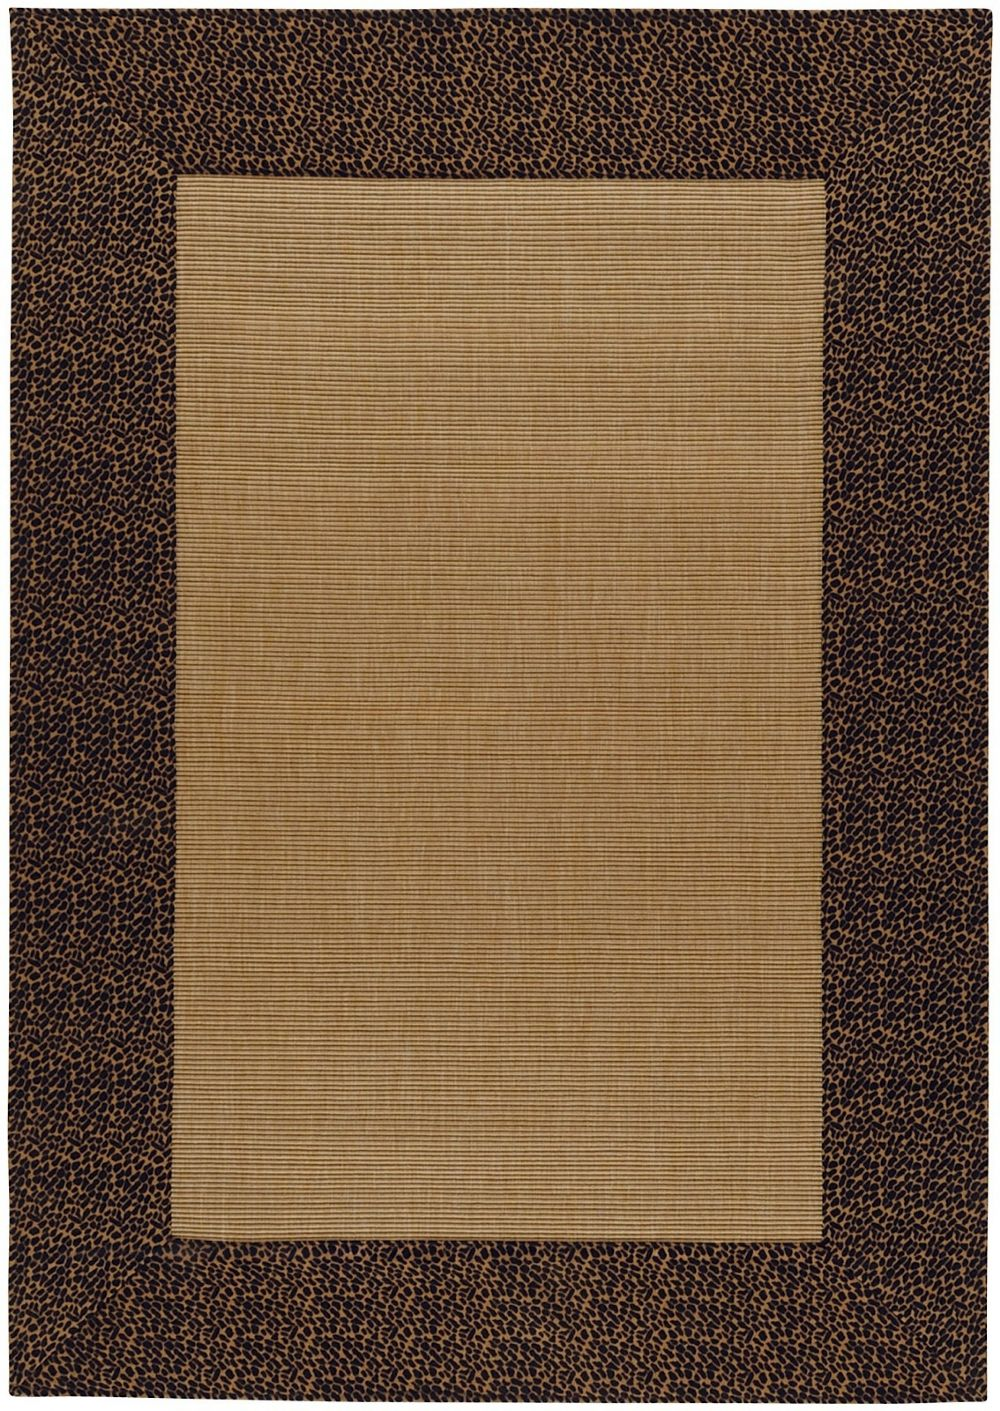 surya amherst animal inspirations area rug collection